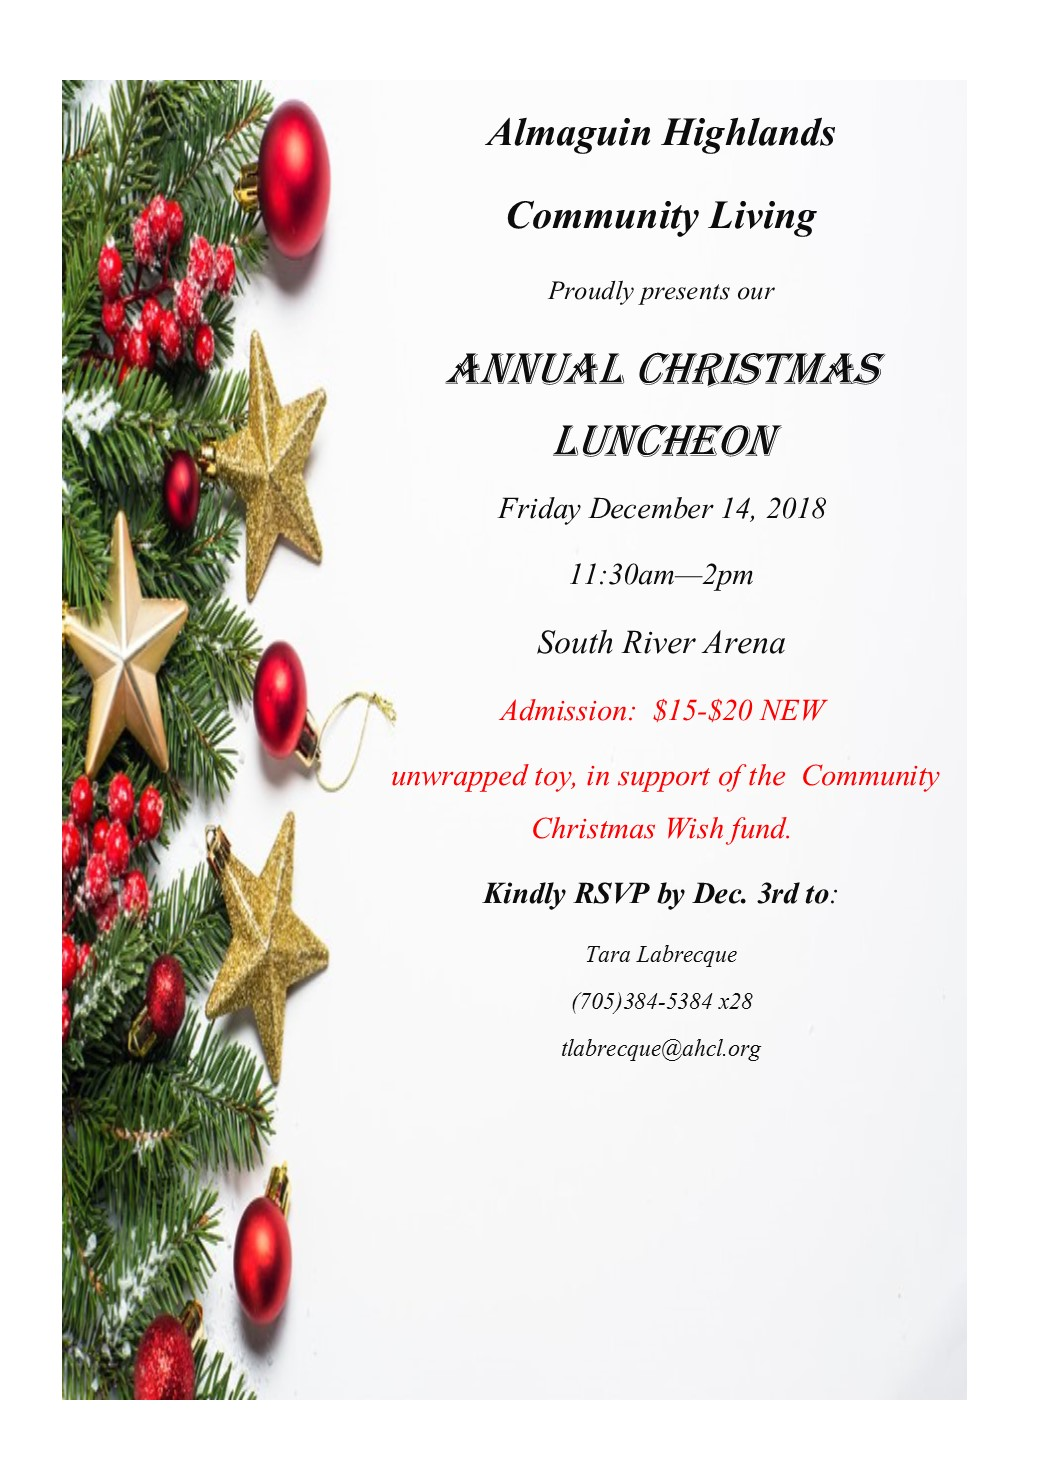 upcoming christmas luncheon almaguin highlands community living